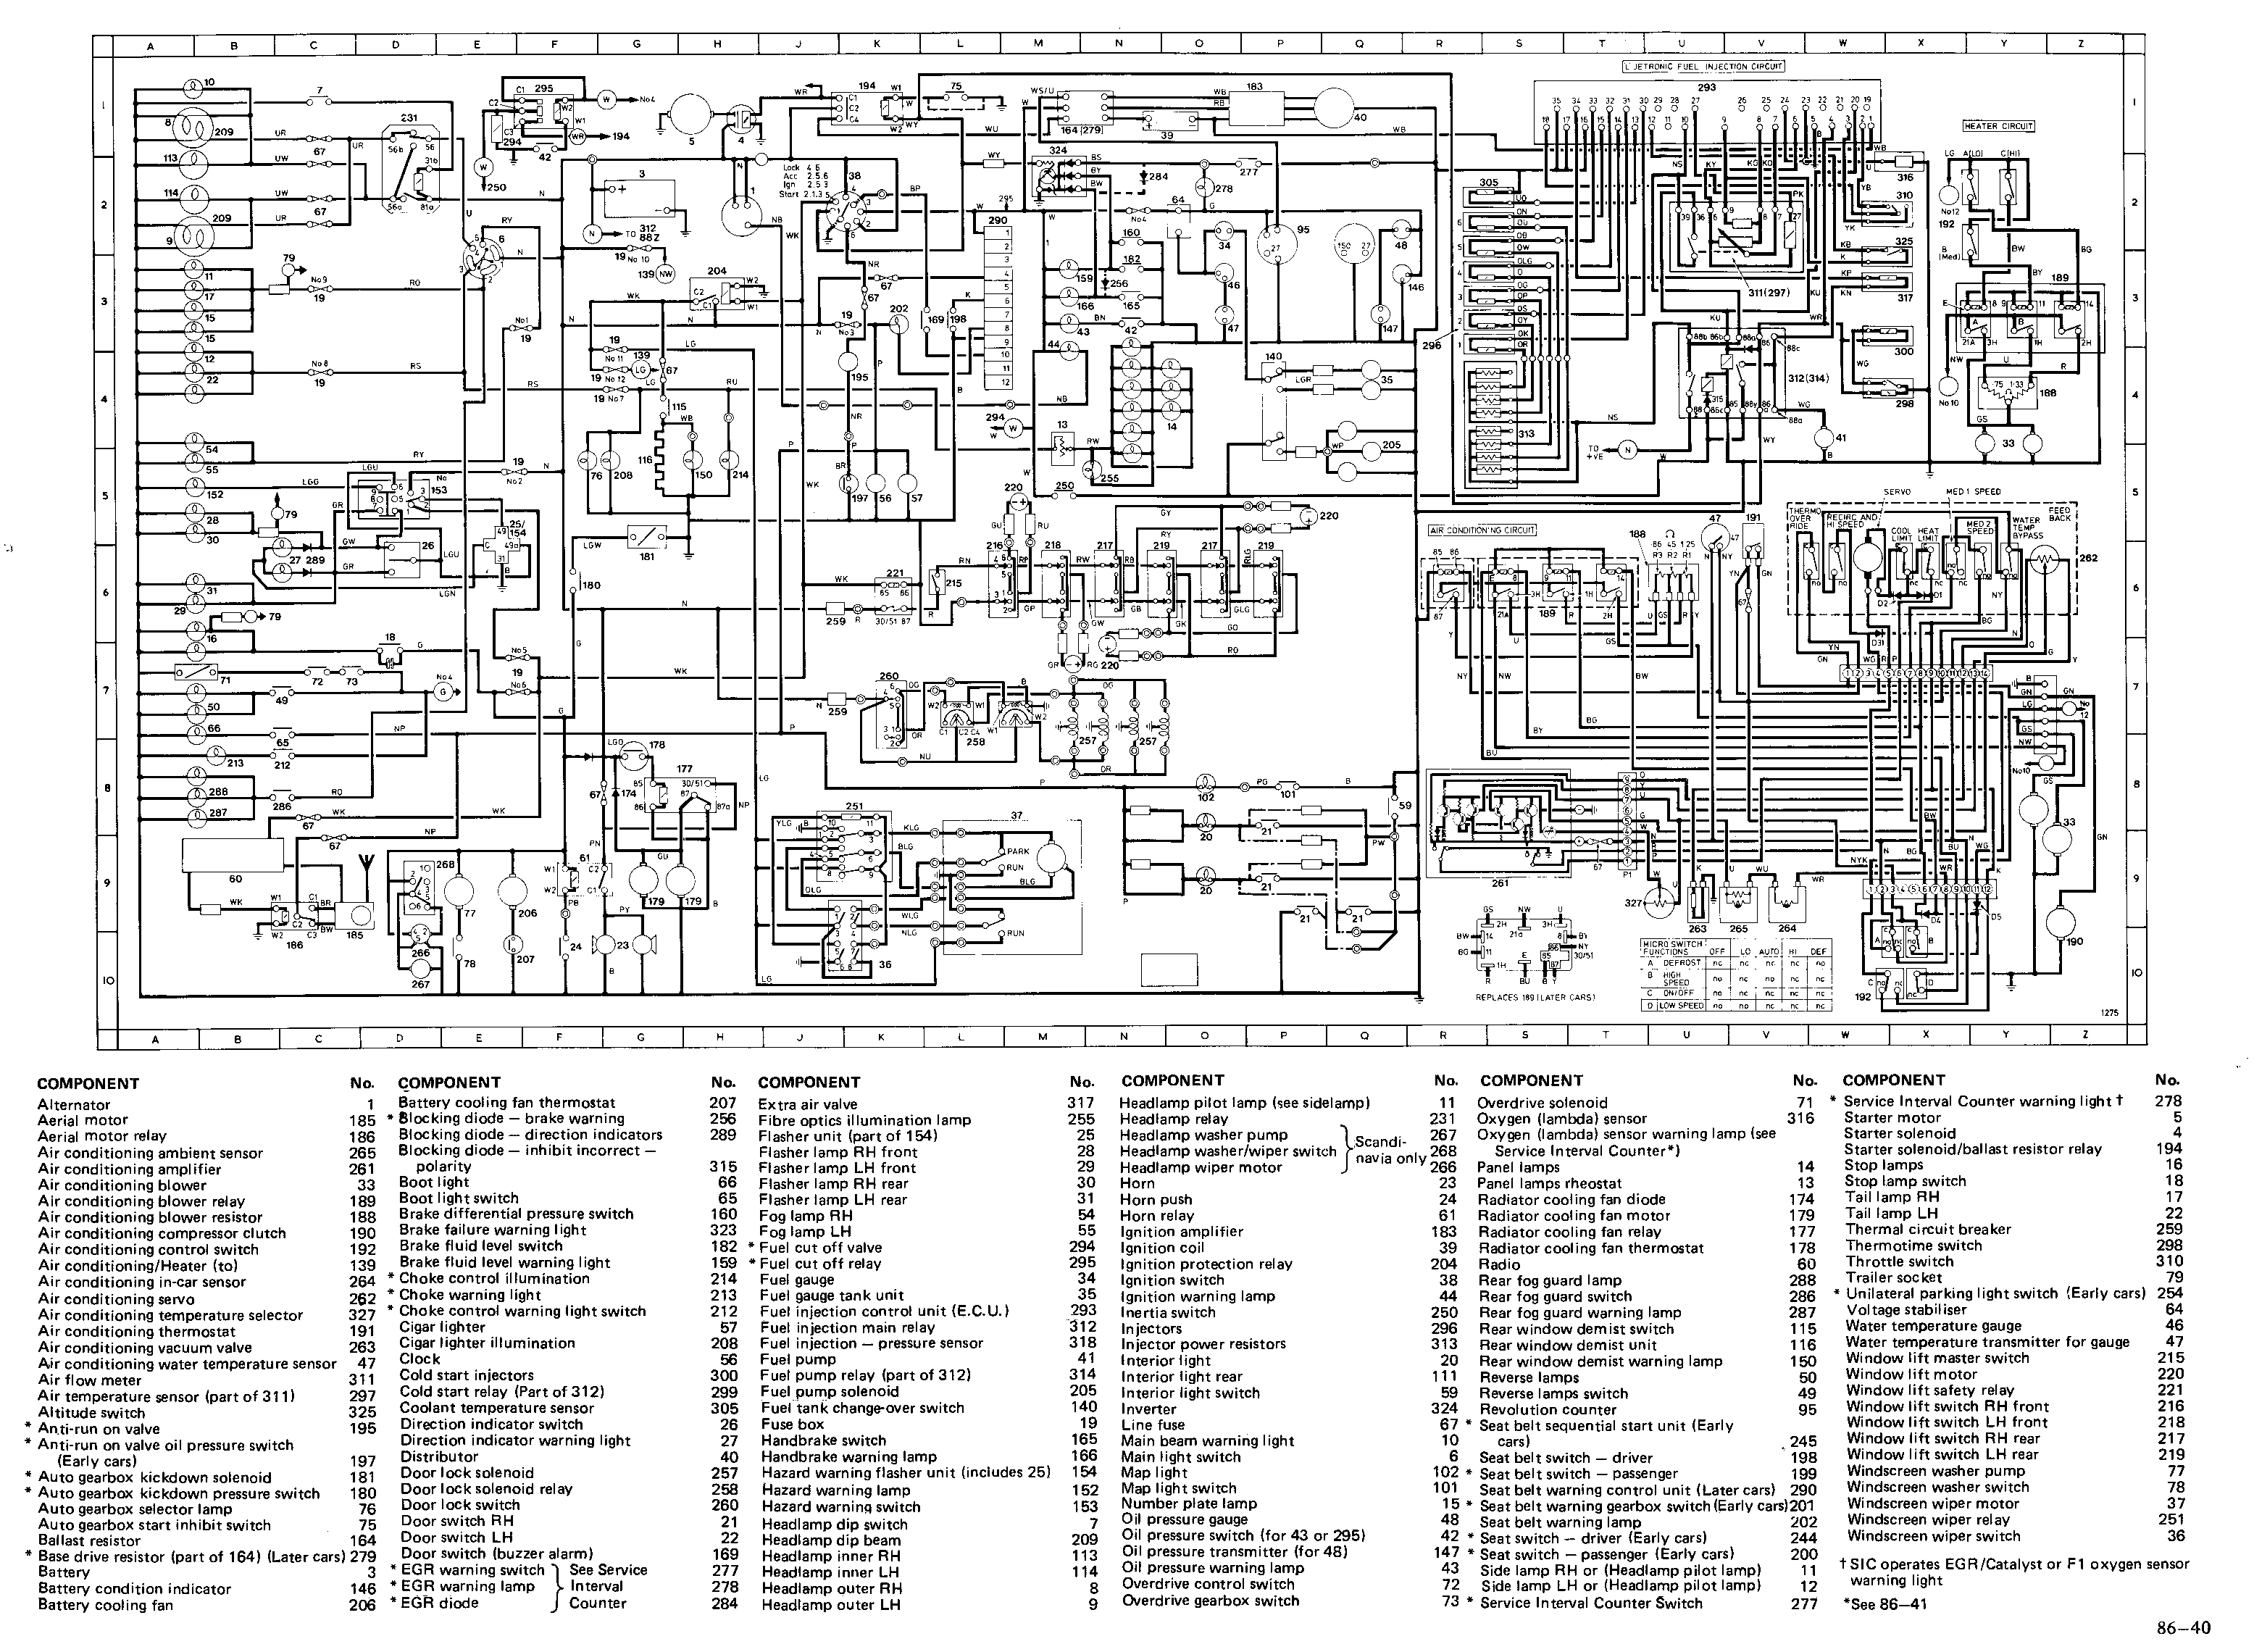 1984 Jaguar Wiring Diagram - wiring diagram internal -  internal.comune-farini-pc.it | Jaguar Car Wiring Diagram |  | Comune di Farini